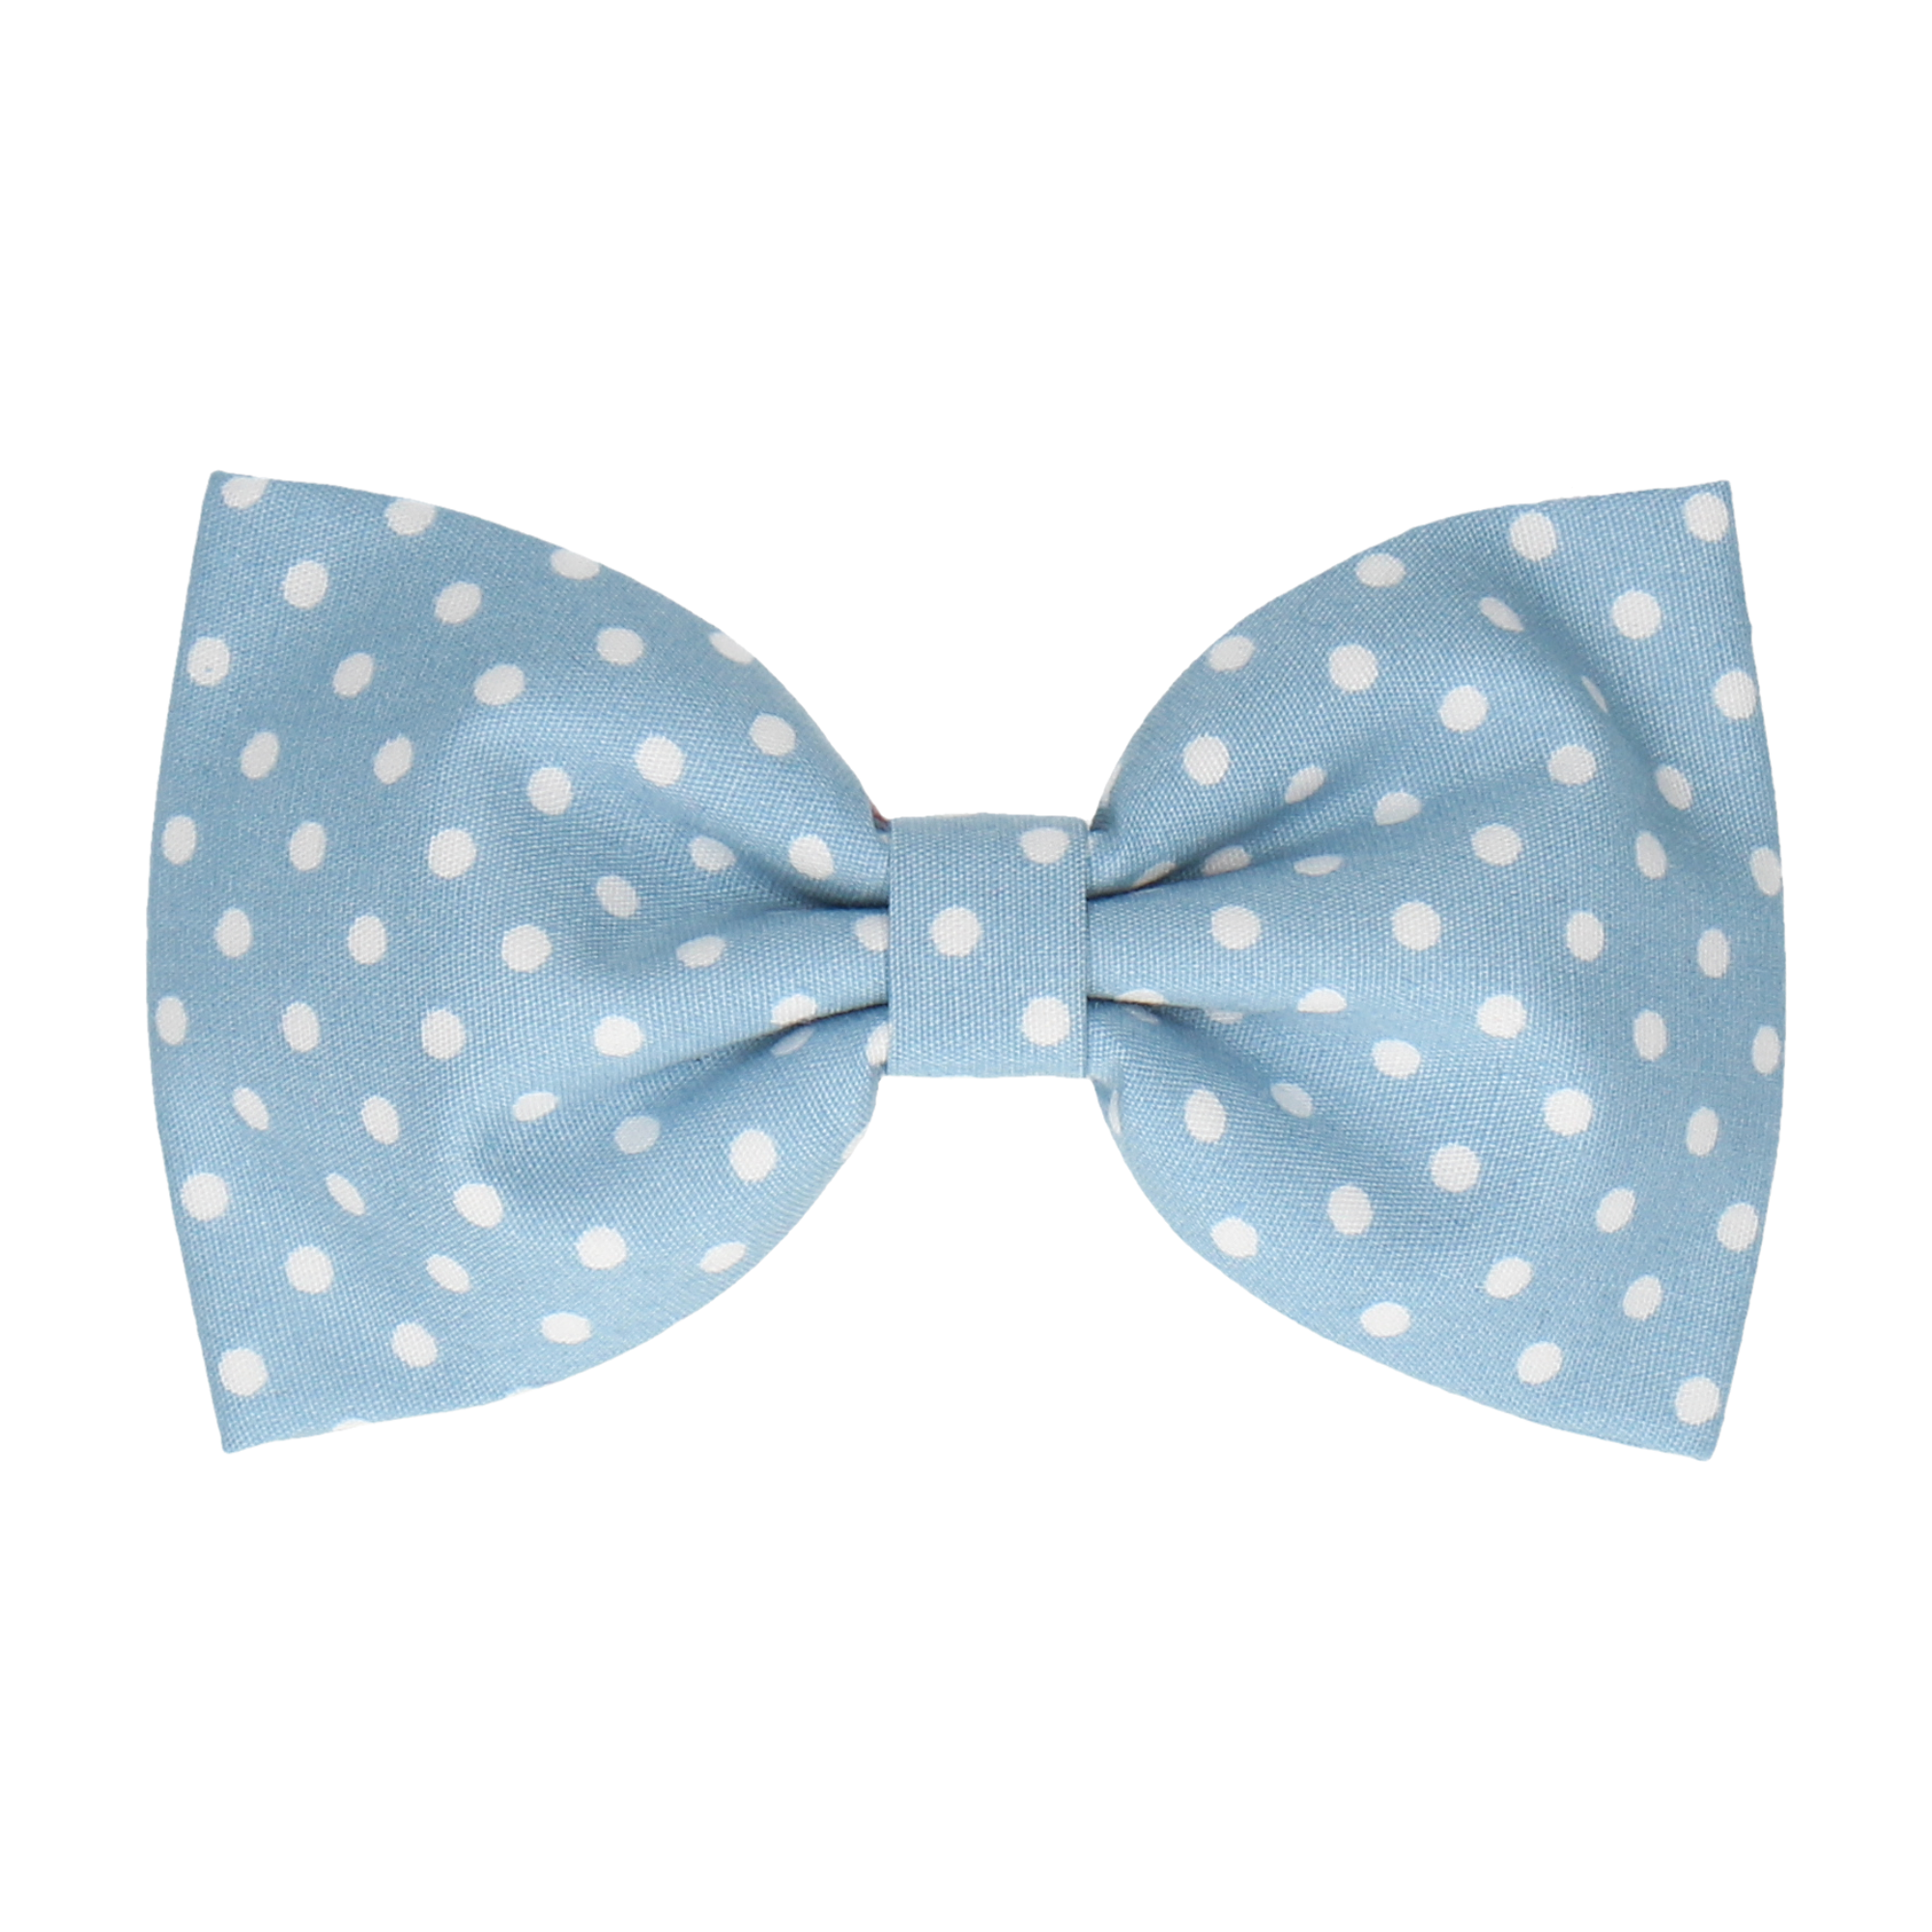 Chiswick in Dusty Blue (Child's Bow Tie)